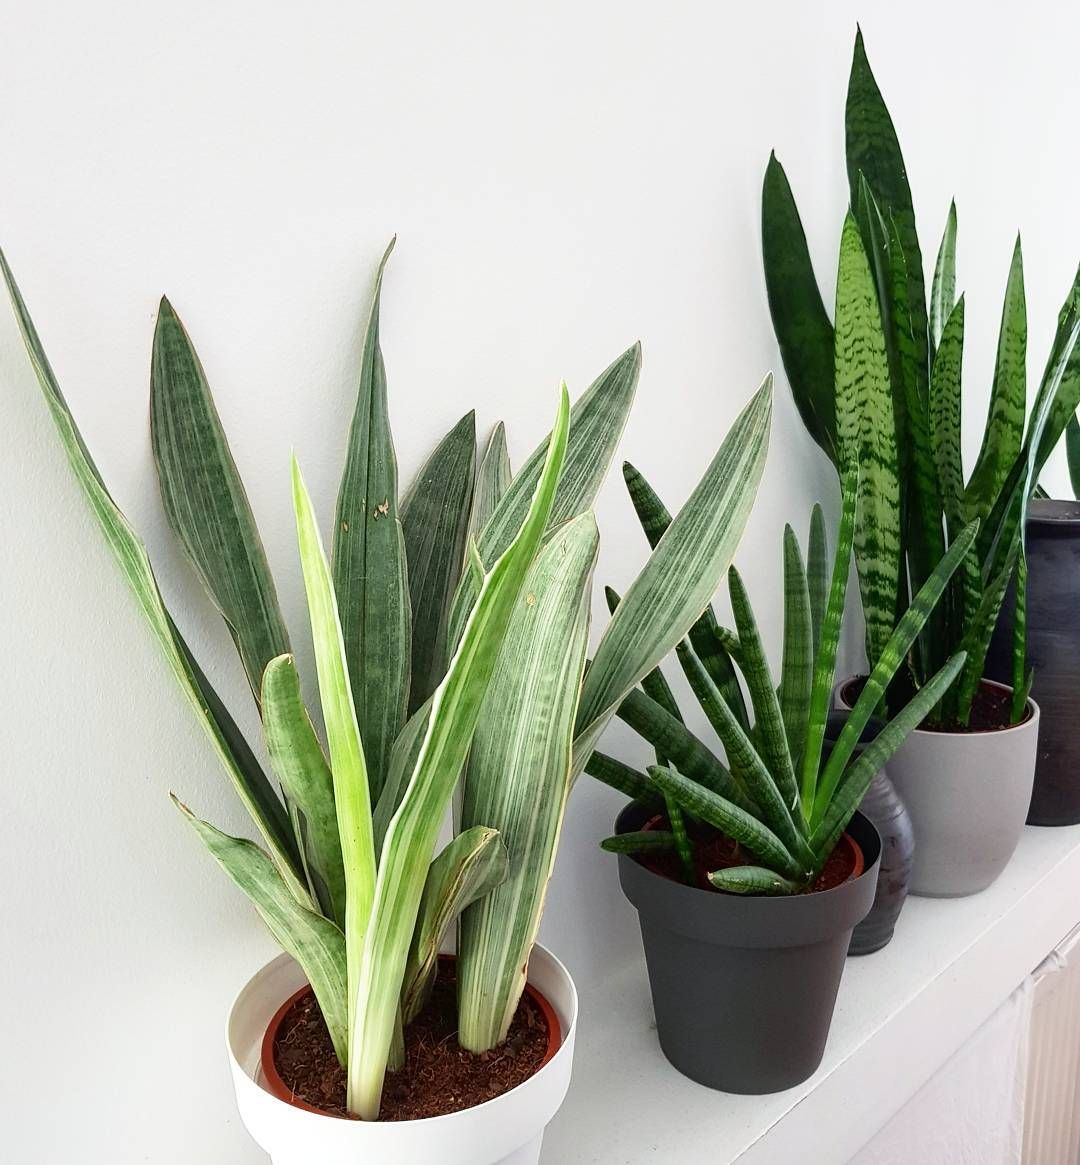 Though to some the appearance of the Sansevieria might not ...